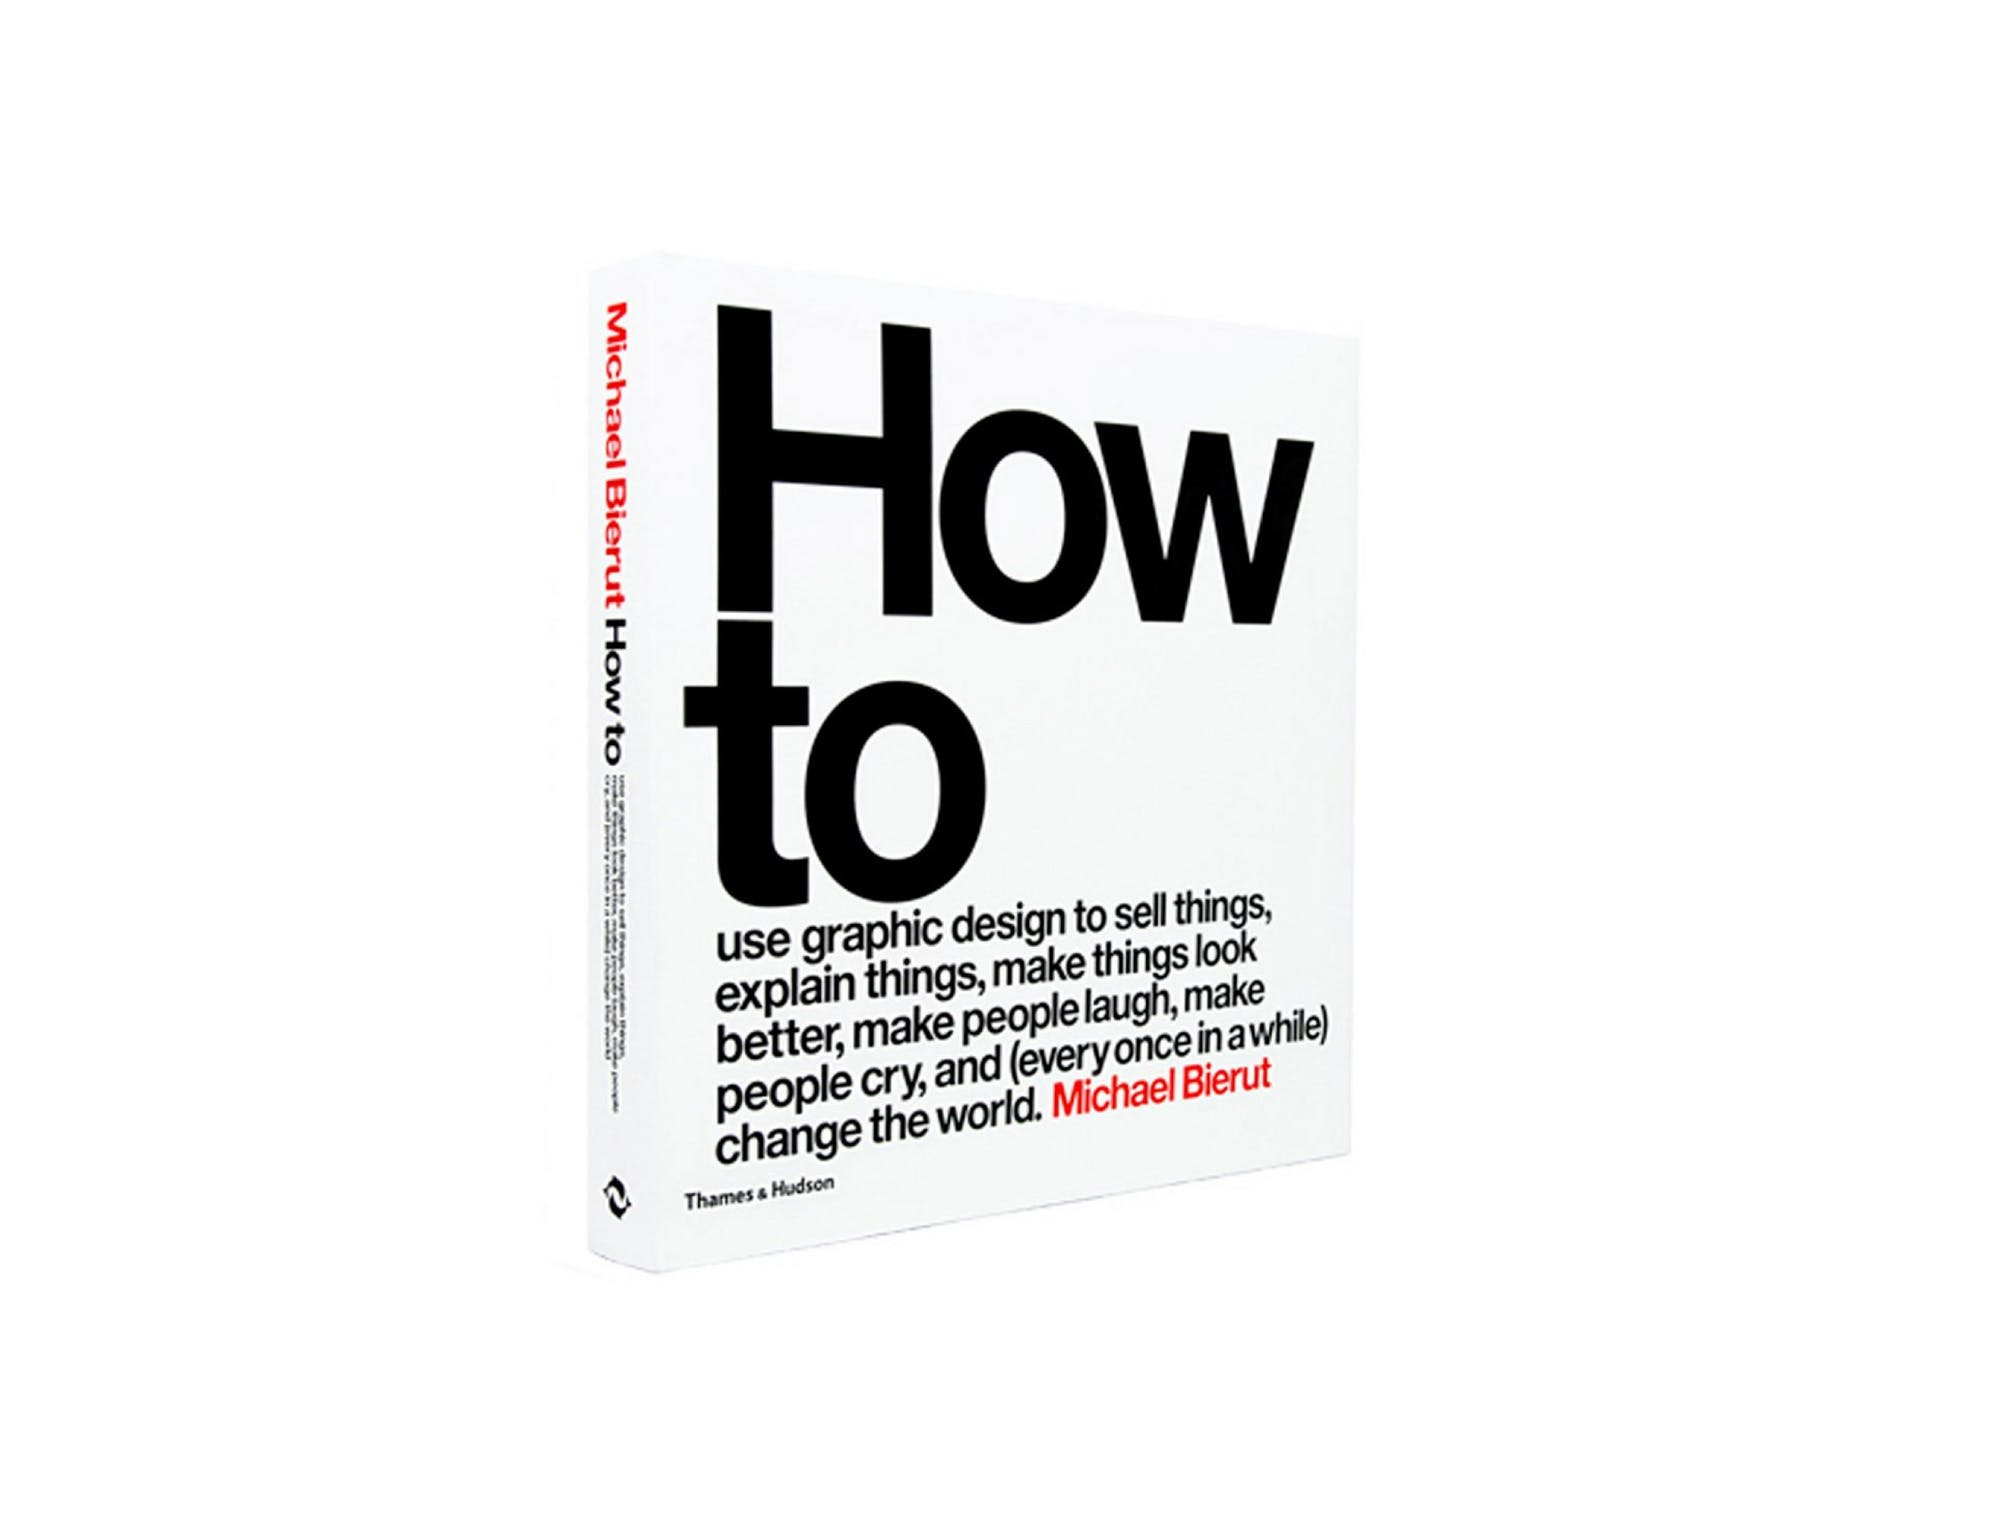 How to use graphic design book